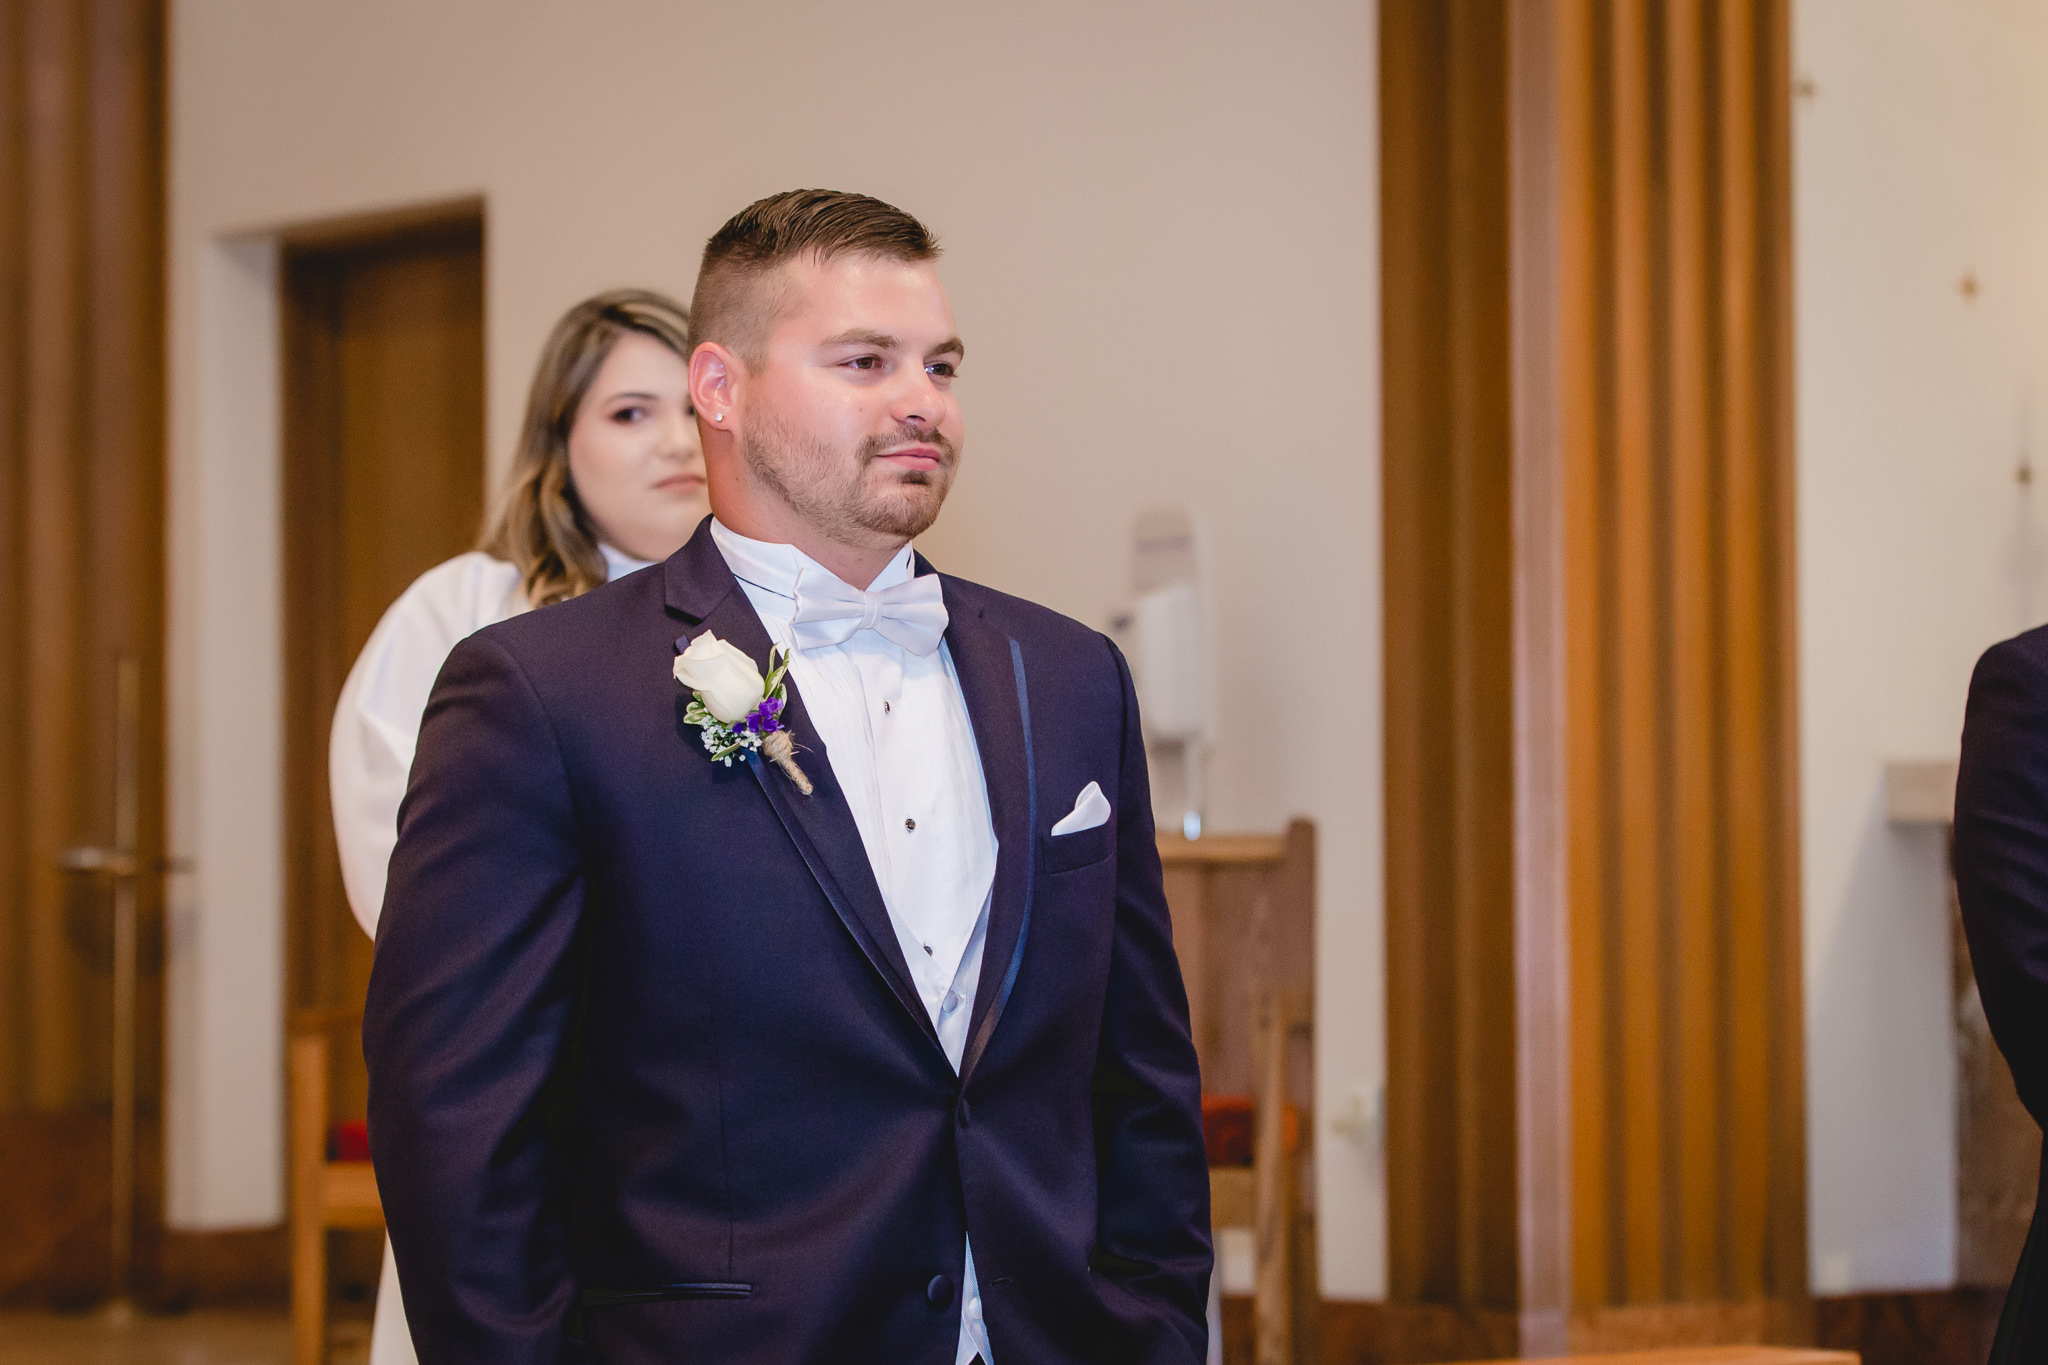 Groom sees his bride coming down the aisle at St. Titus Church